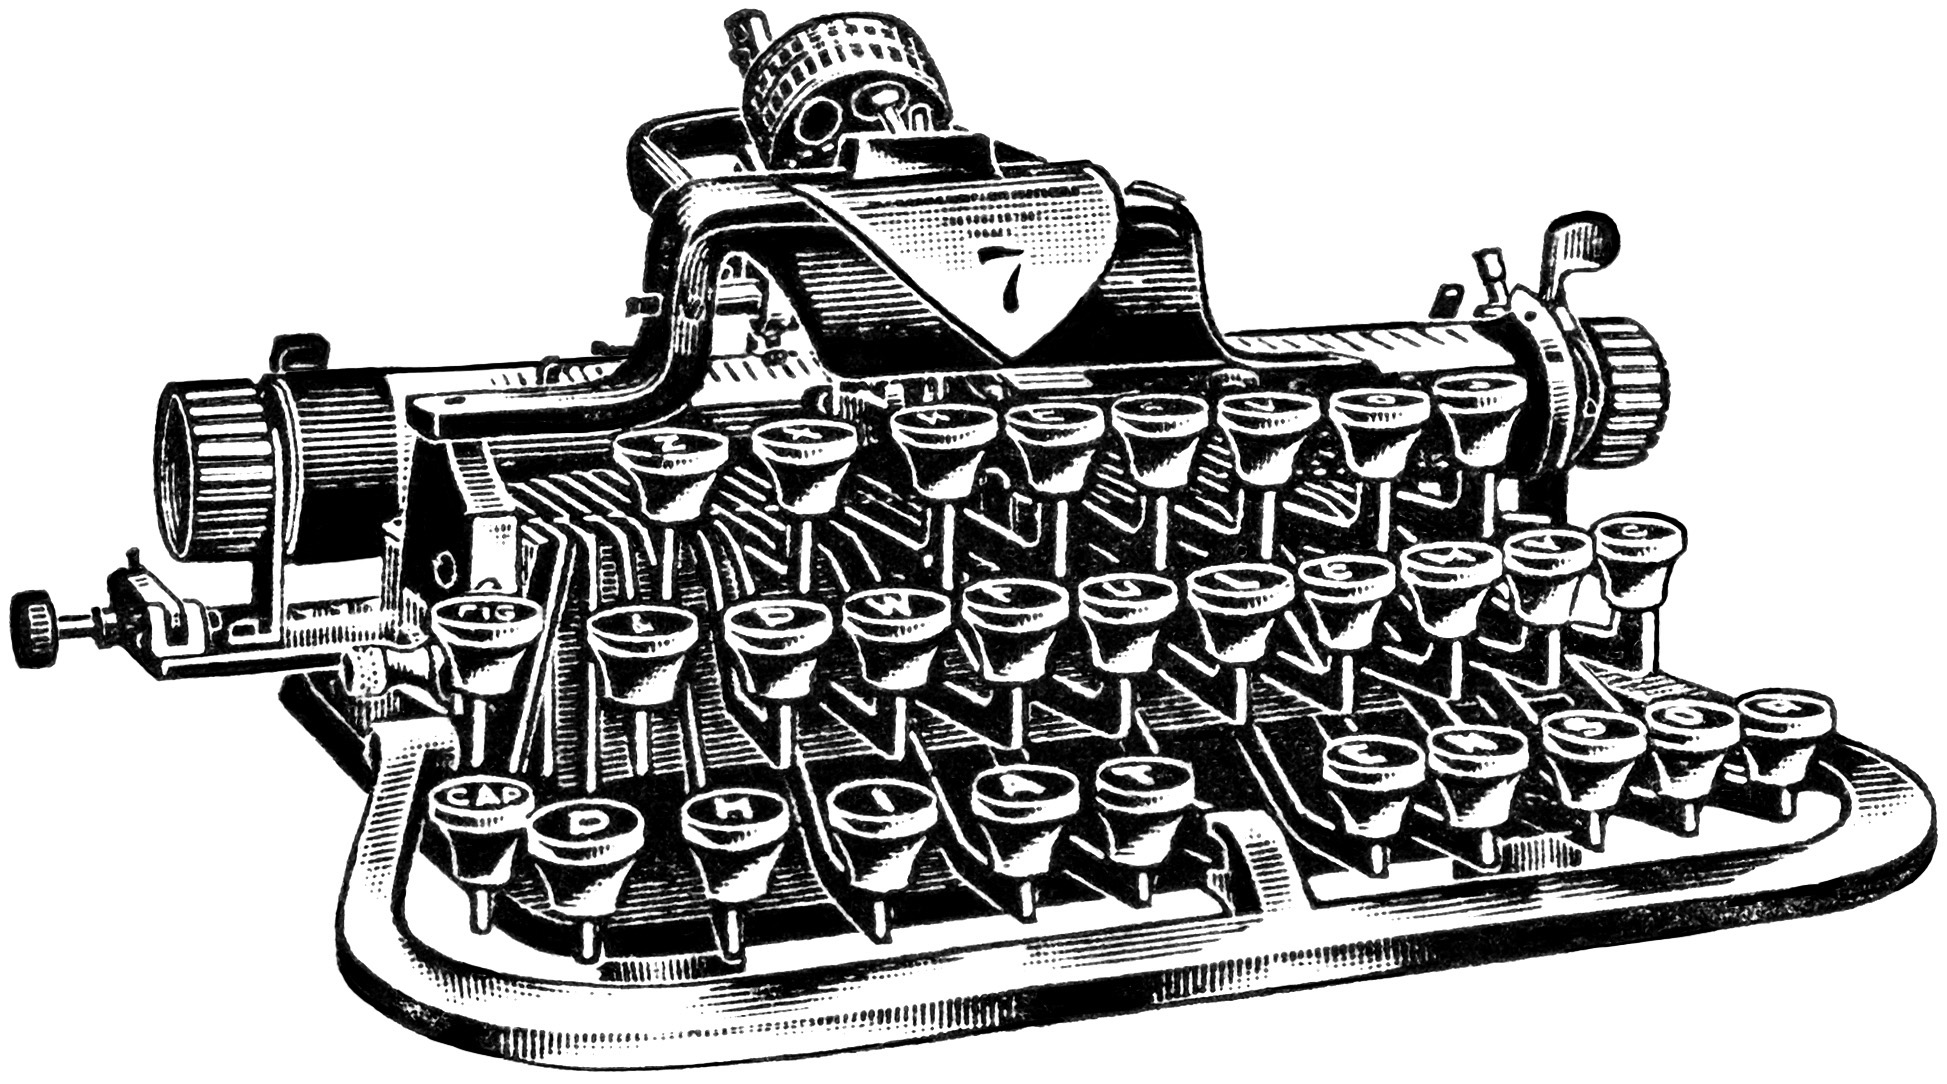 vintage typewriter clipart, antique typewriter digital graphics, old magazine advertisement, vintage office clip art, black and white typewriter image